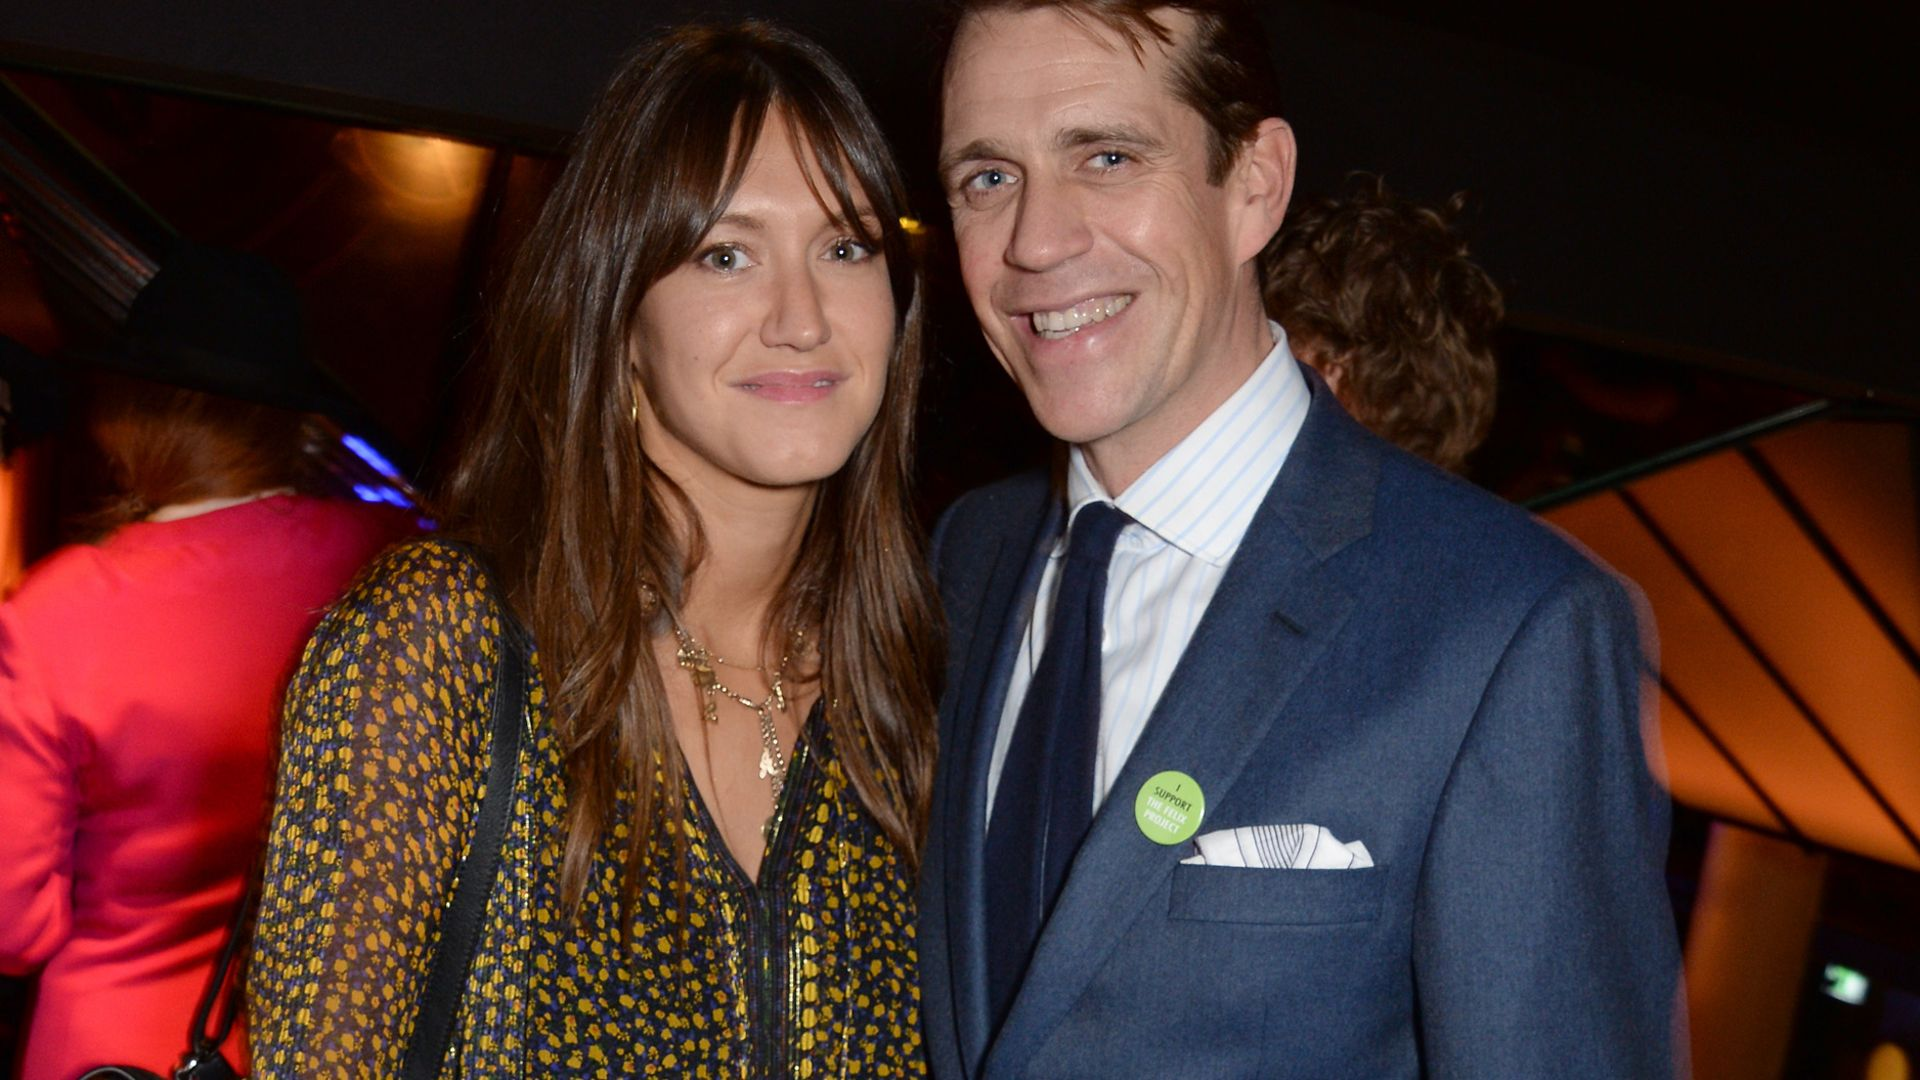 Ben Elliot, and his wife Mary-Clare, in November 2018 - Credit: Dave Benett/Getty Images